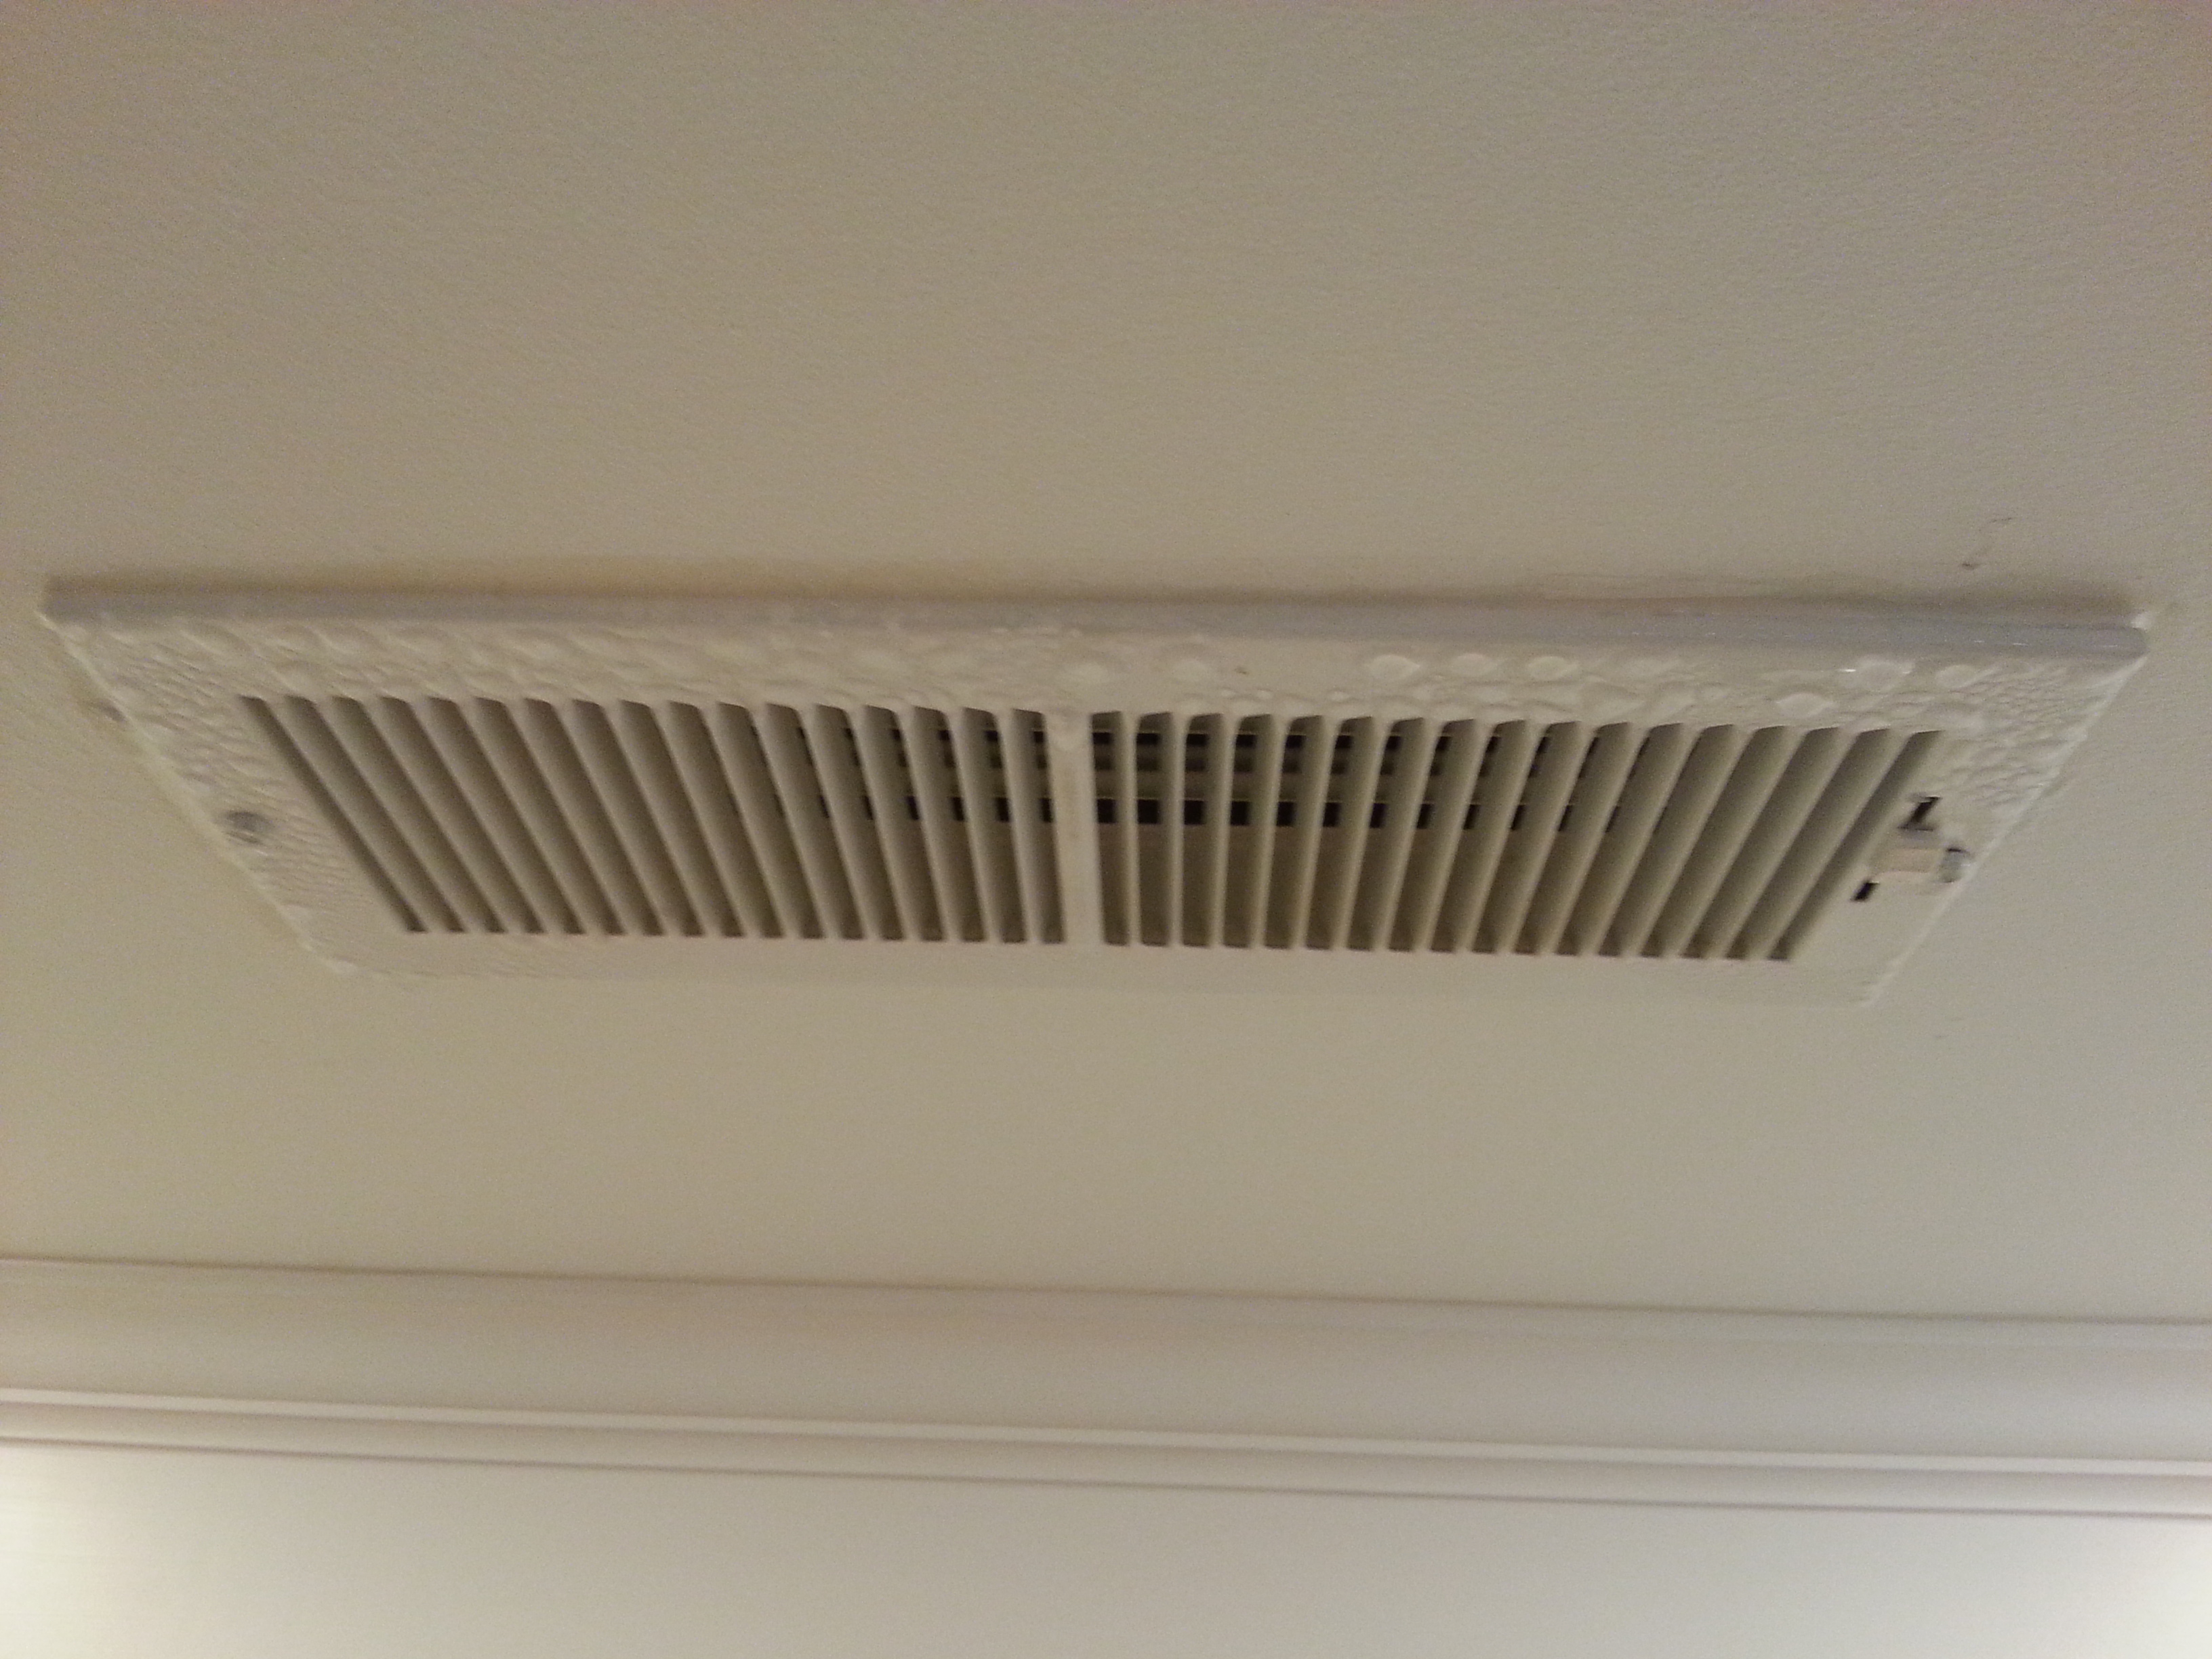 Condensation on ceiling HVAC diffusers (grill, heat